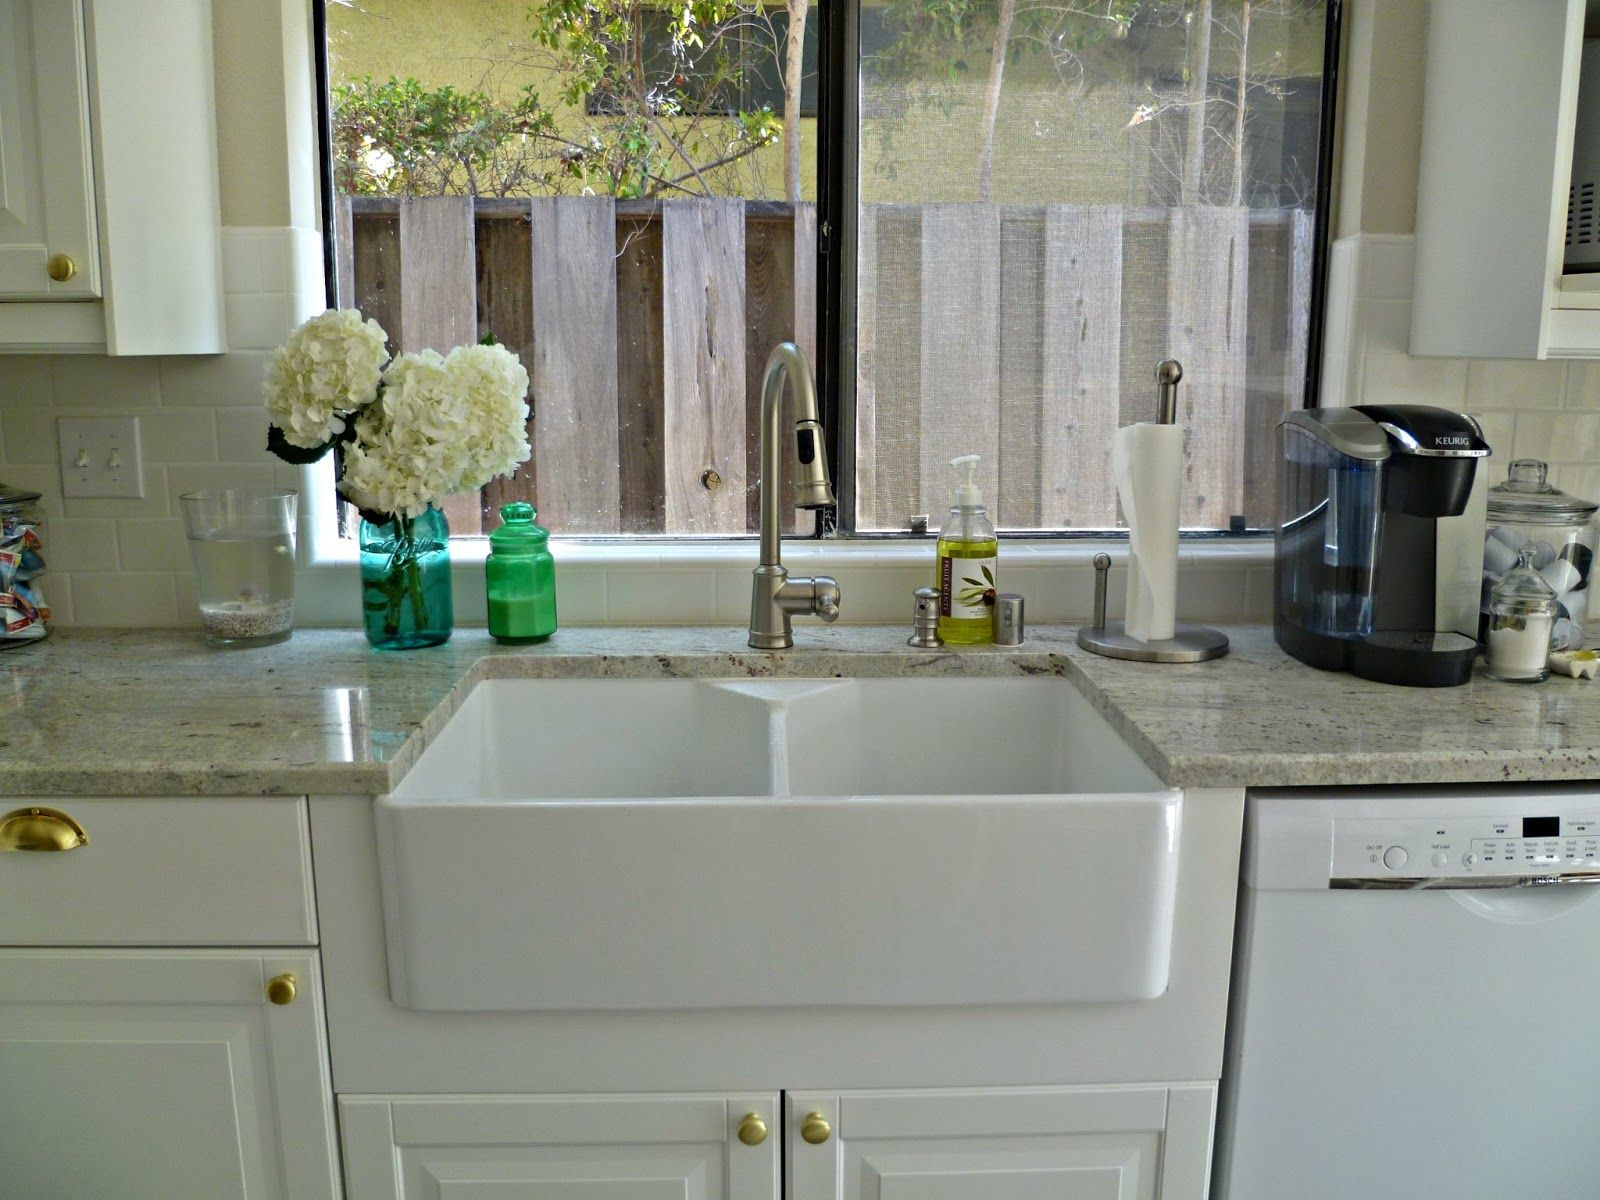 sink kitchen cabinets Kitchen cabinets farmhouse sinks with graniter tops Panels Double Porcelain Farmhouse Sinks With Grey Granite Countertops